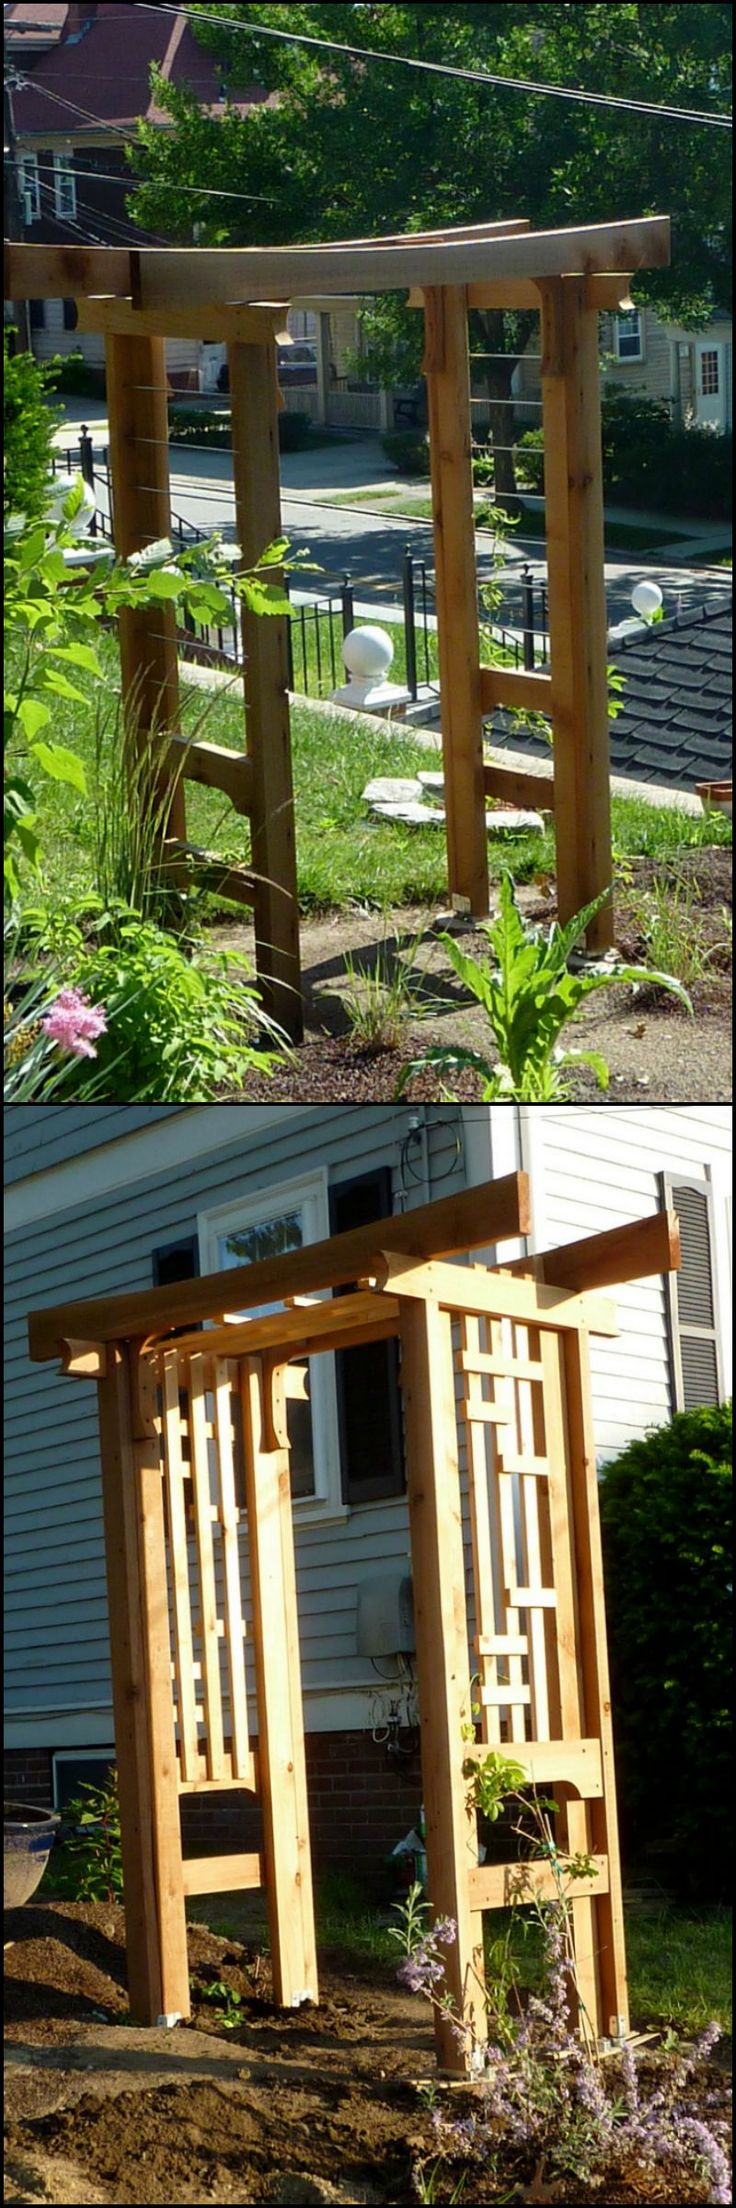 How to build an arbor trellis woodworking projects plans for Trellis or arbor